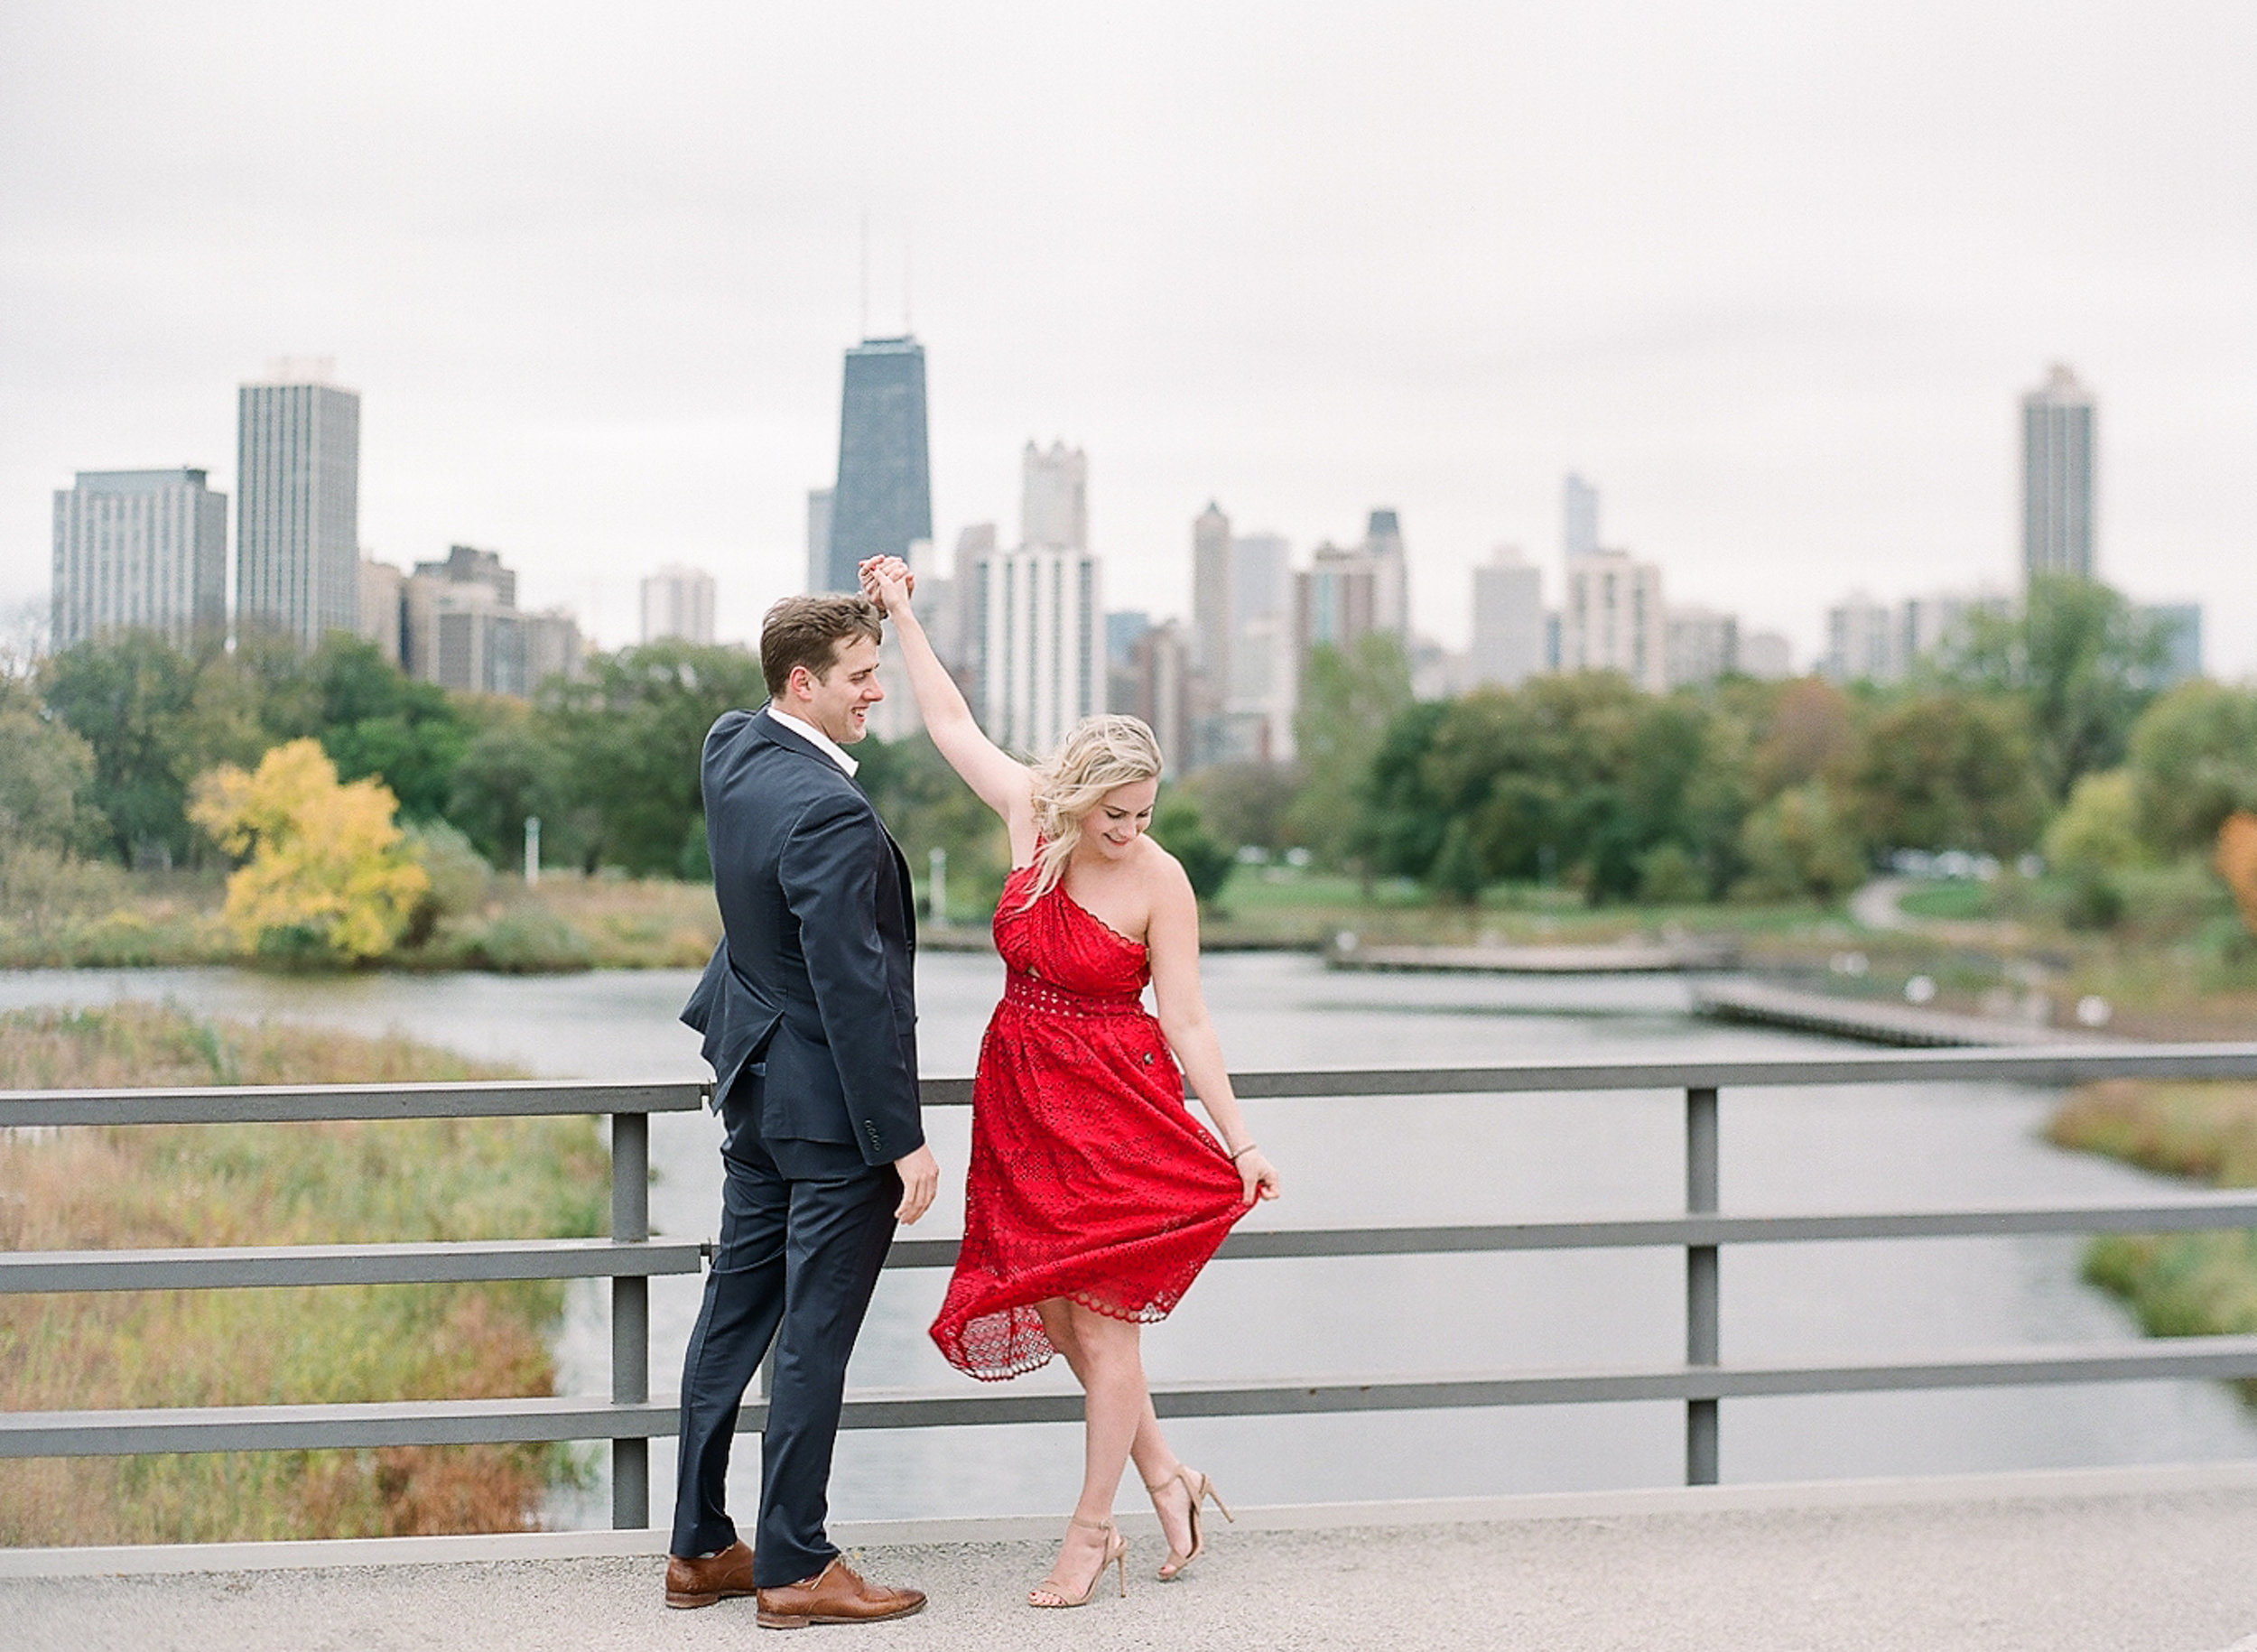 Bonphotage Chicago Fine Art Engagement Photography - Lincoln Park